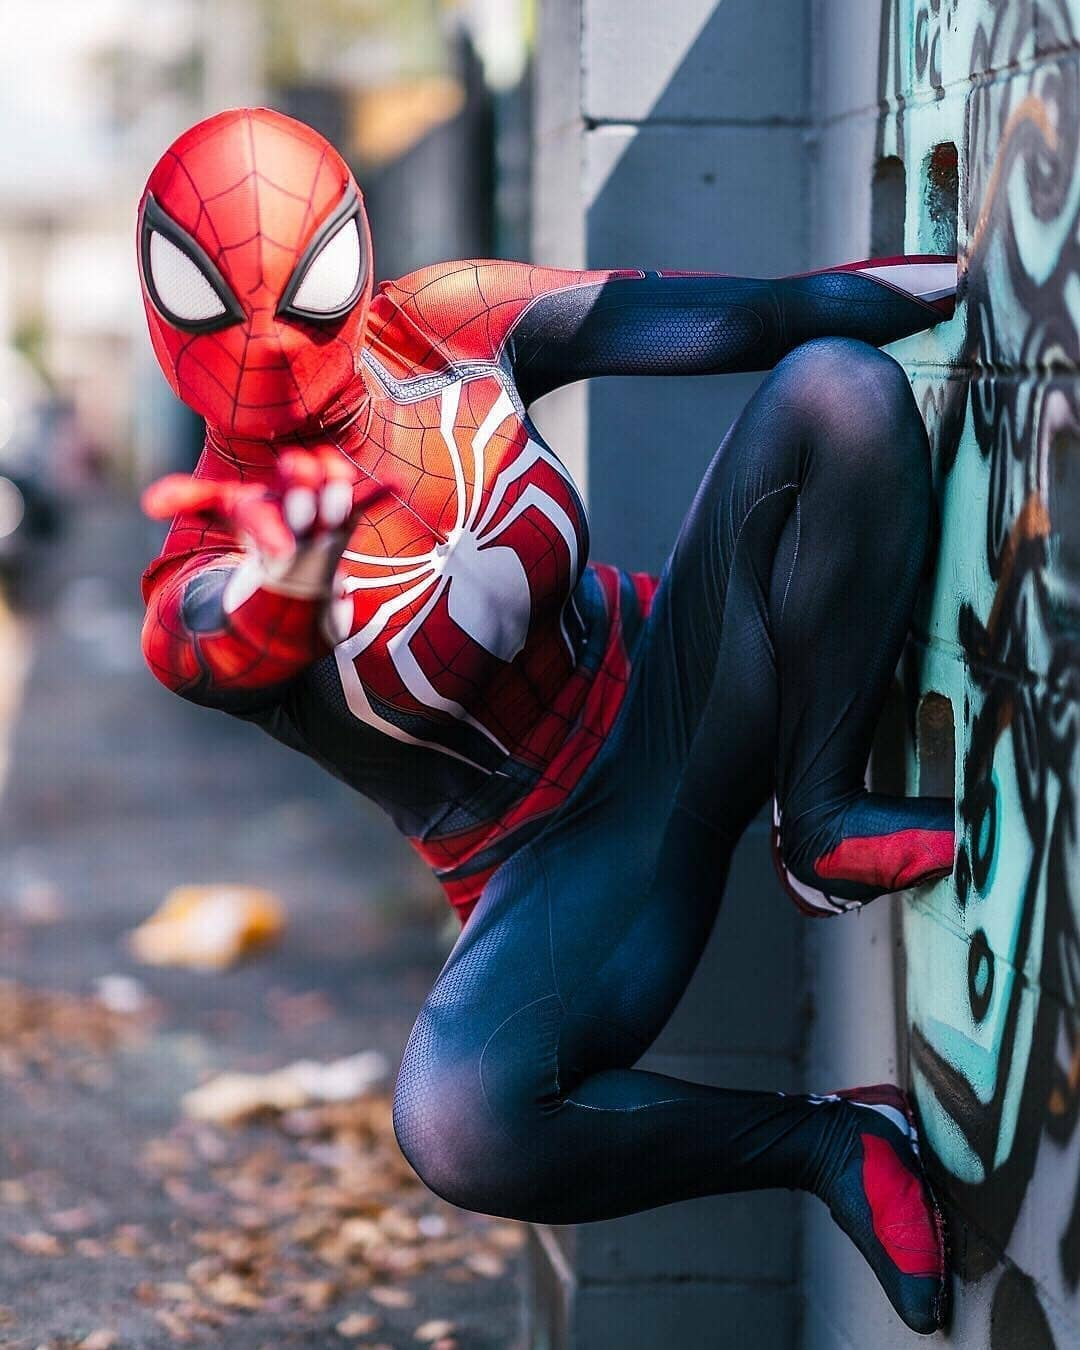 spiderman cosplay by vixiecosplay Photo by jeffjenkinsphotography